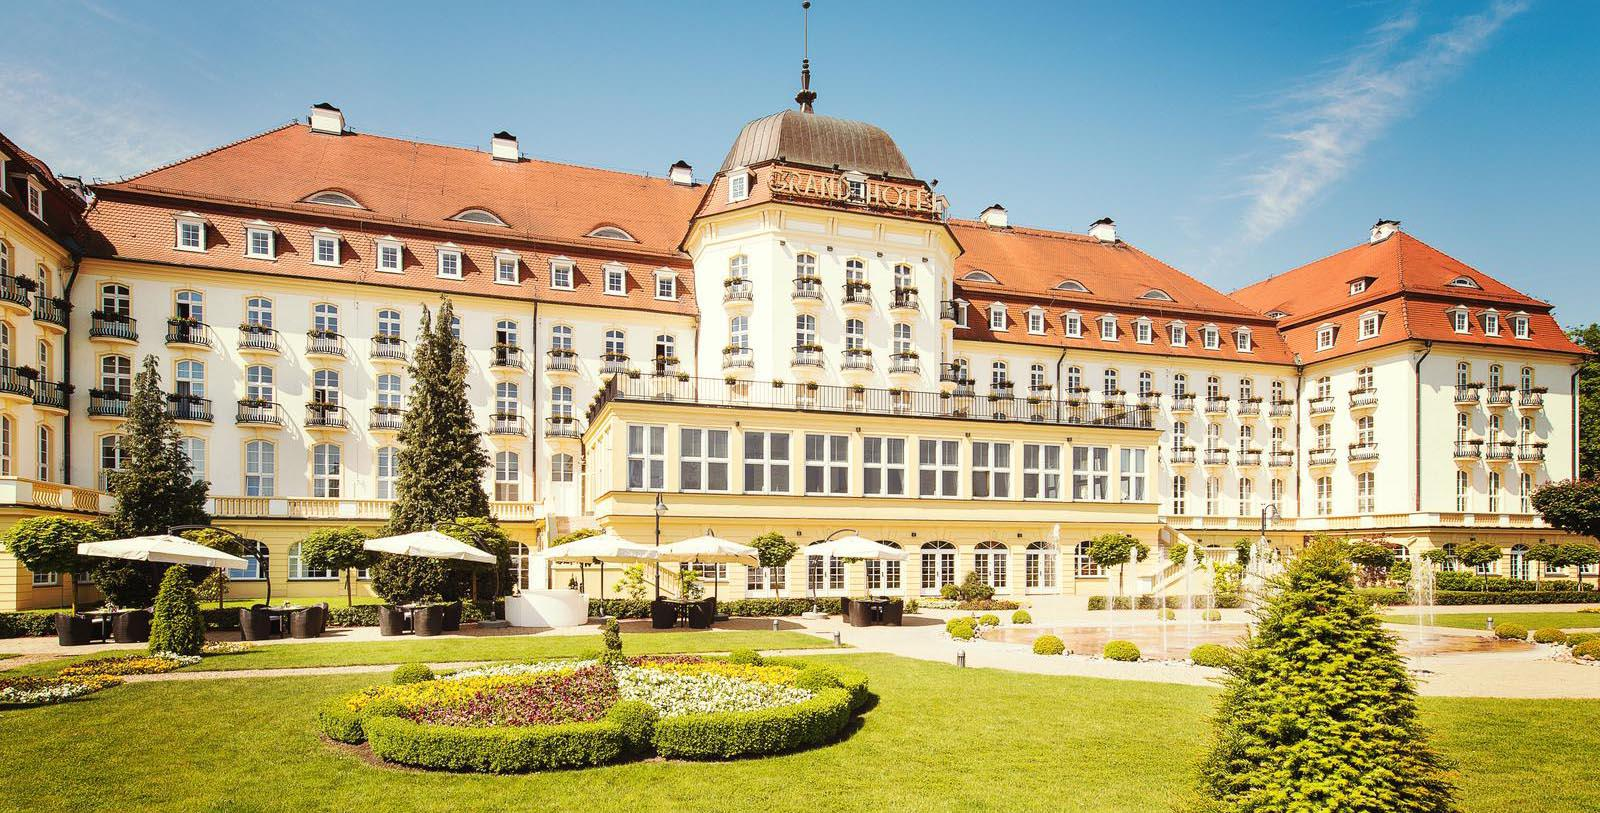 Daytime exterior and gardens of the Sofitel Grand Sopot in Poland.